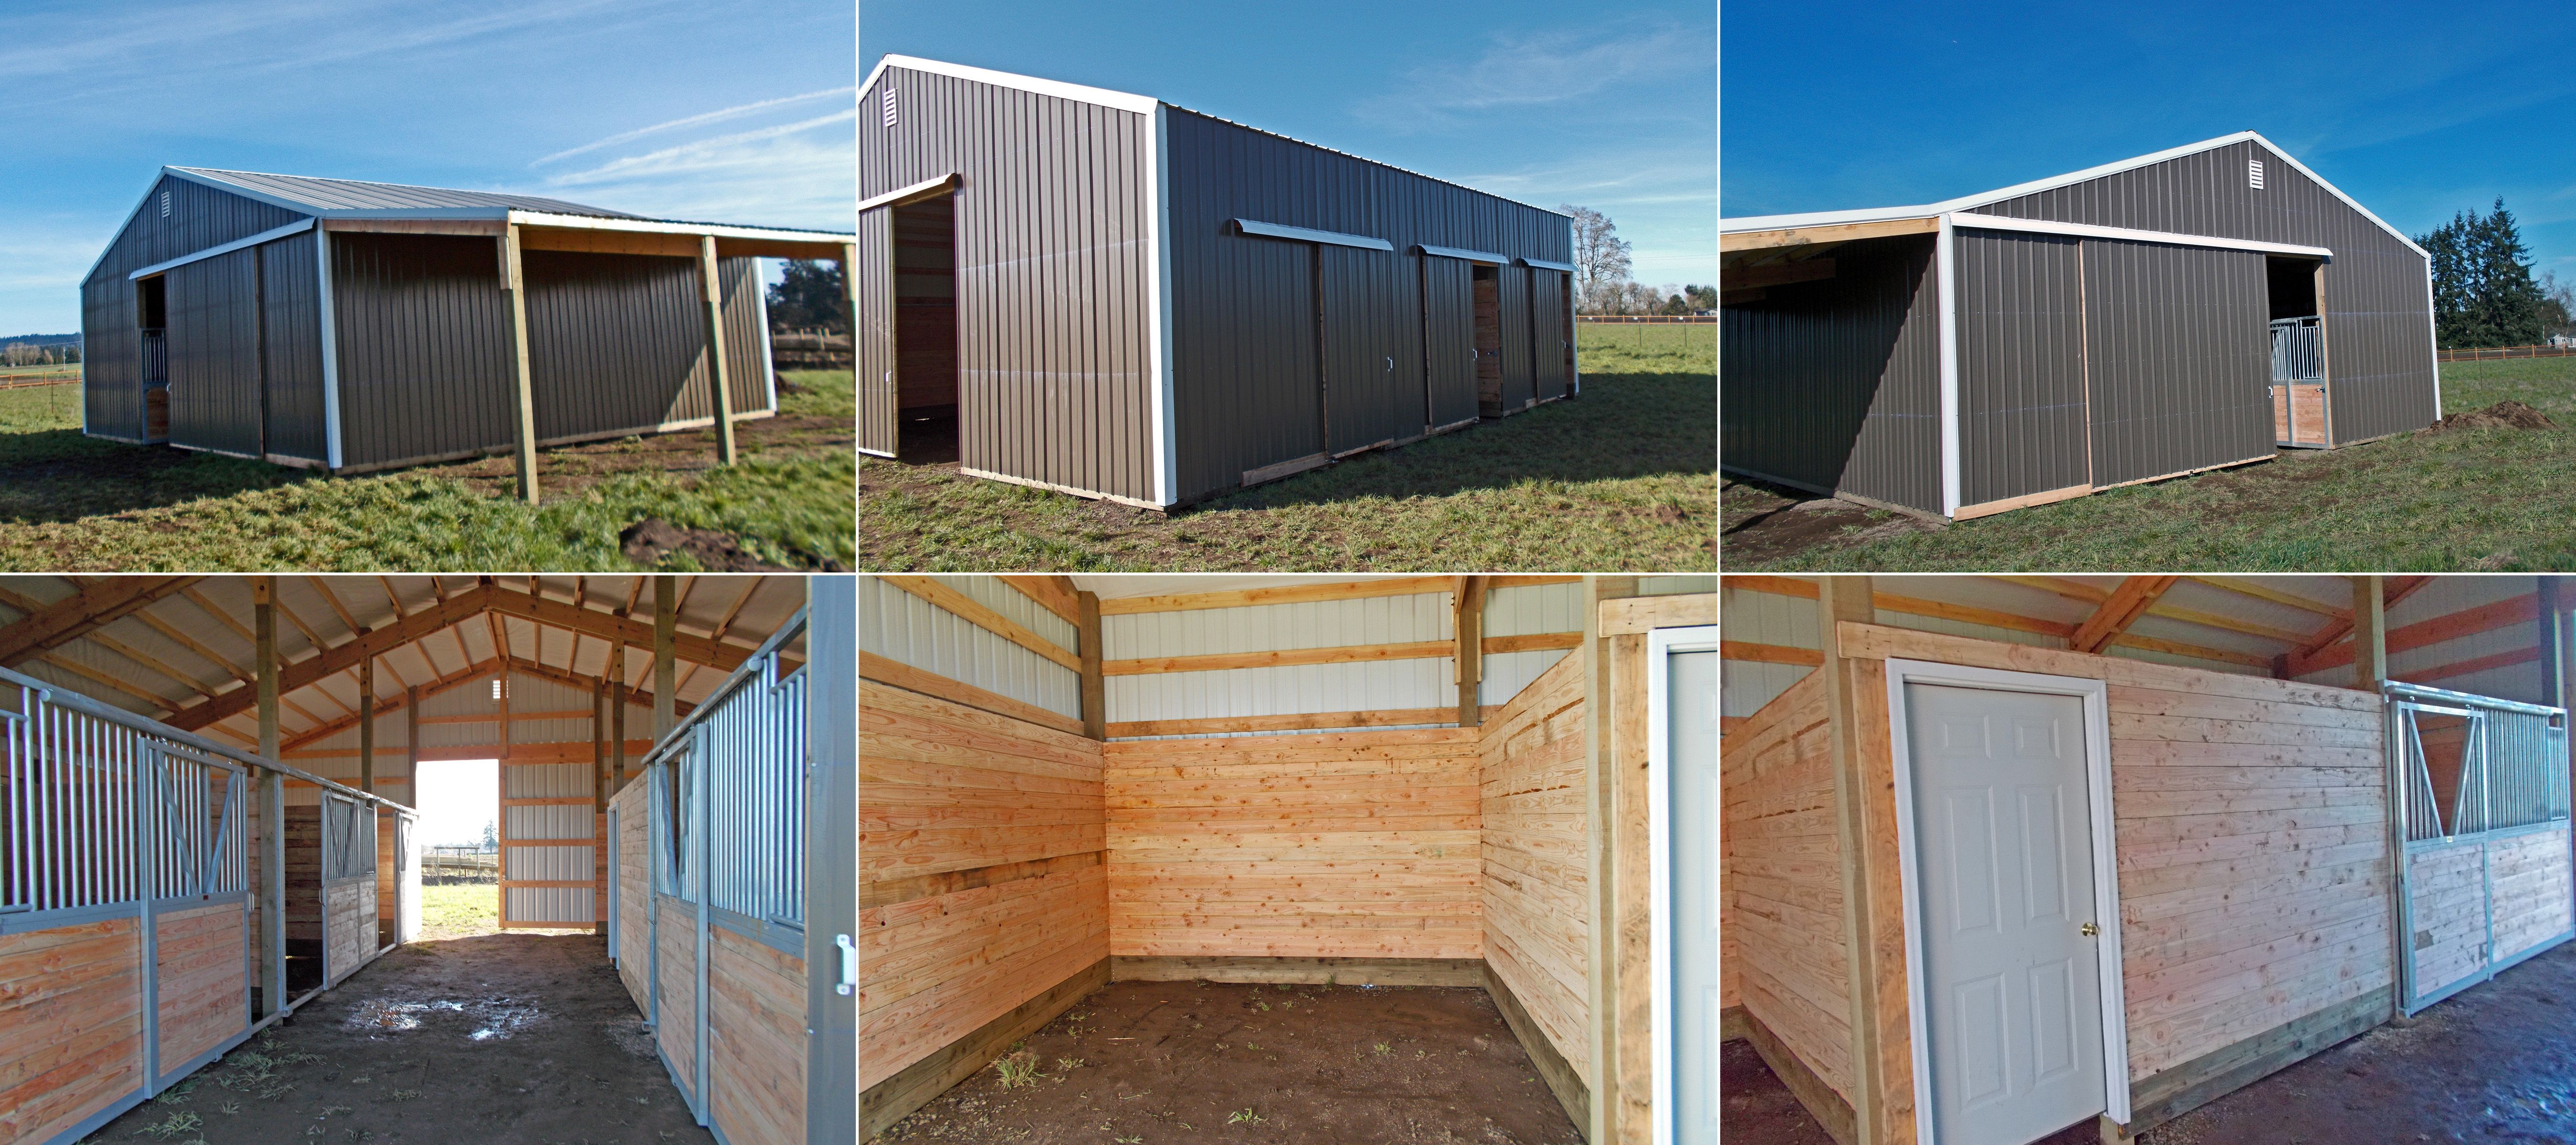 36 X 36 X 12 Horse Barn With A Lean Too Horse Stalls And Tack Room Www Econofabbuildings Com Barn Layout Pole Barn Construction Slider Door